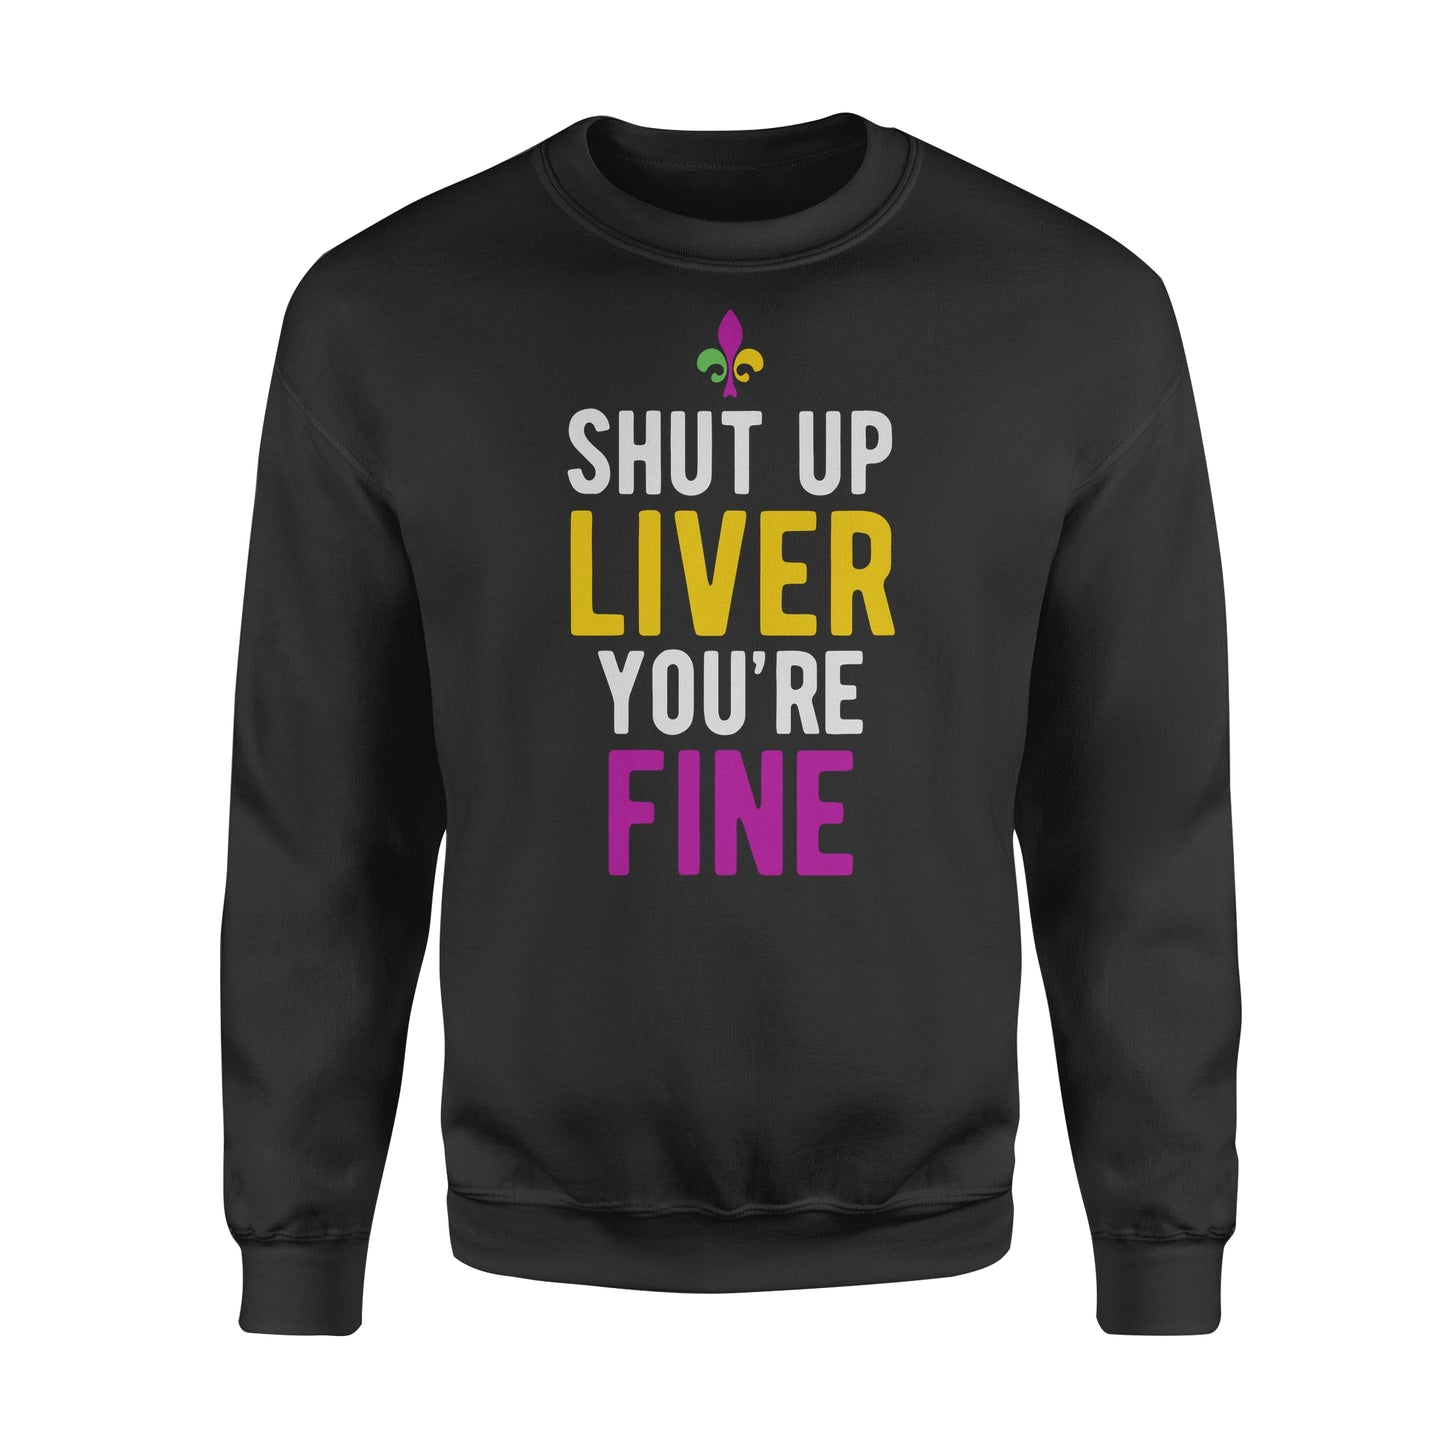 Mardi Gras Shirt Shut Up Liver You're Fine - Standard Fleece Sweatshirt Apparel S / Black